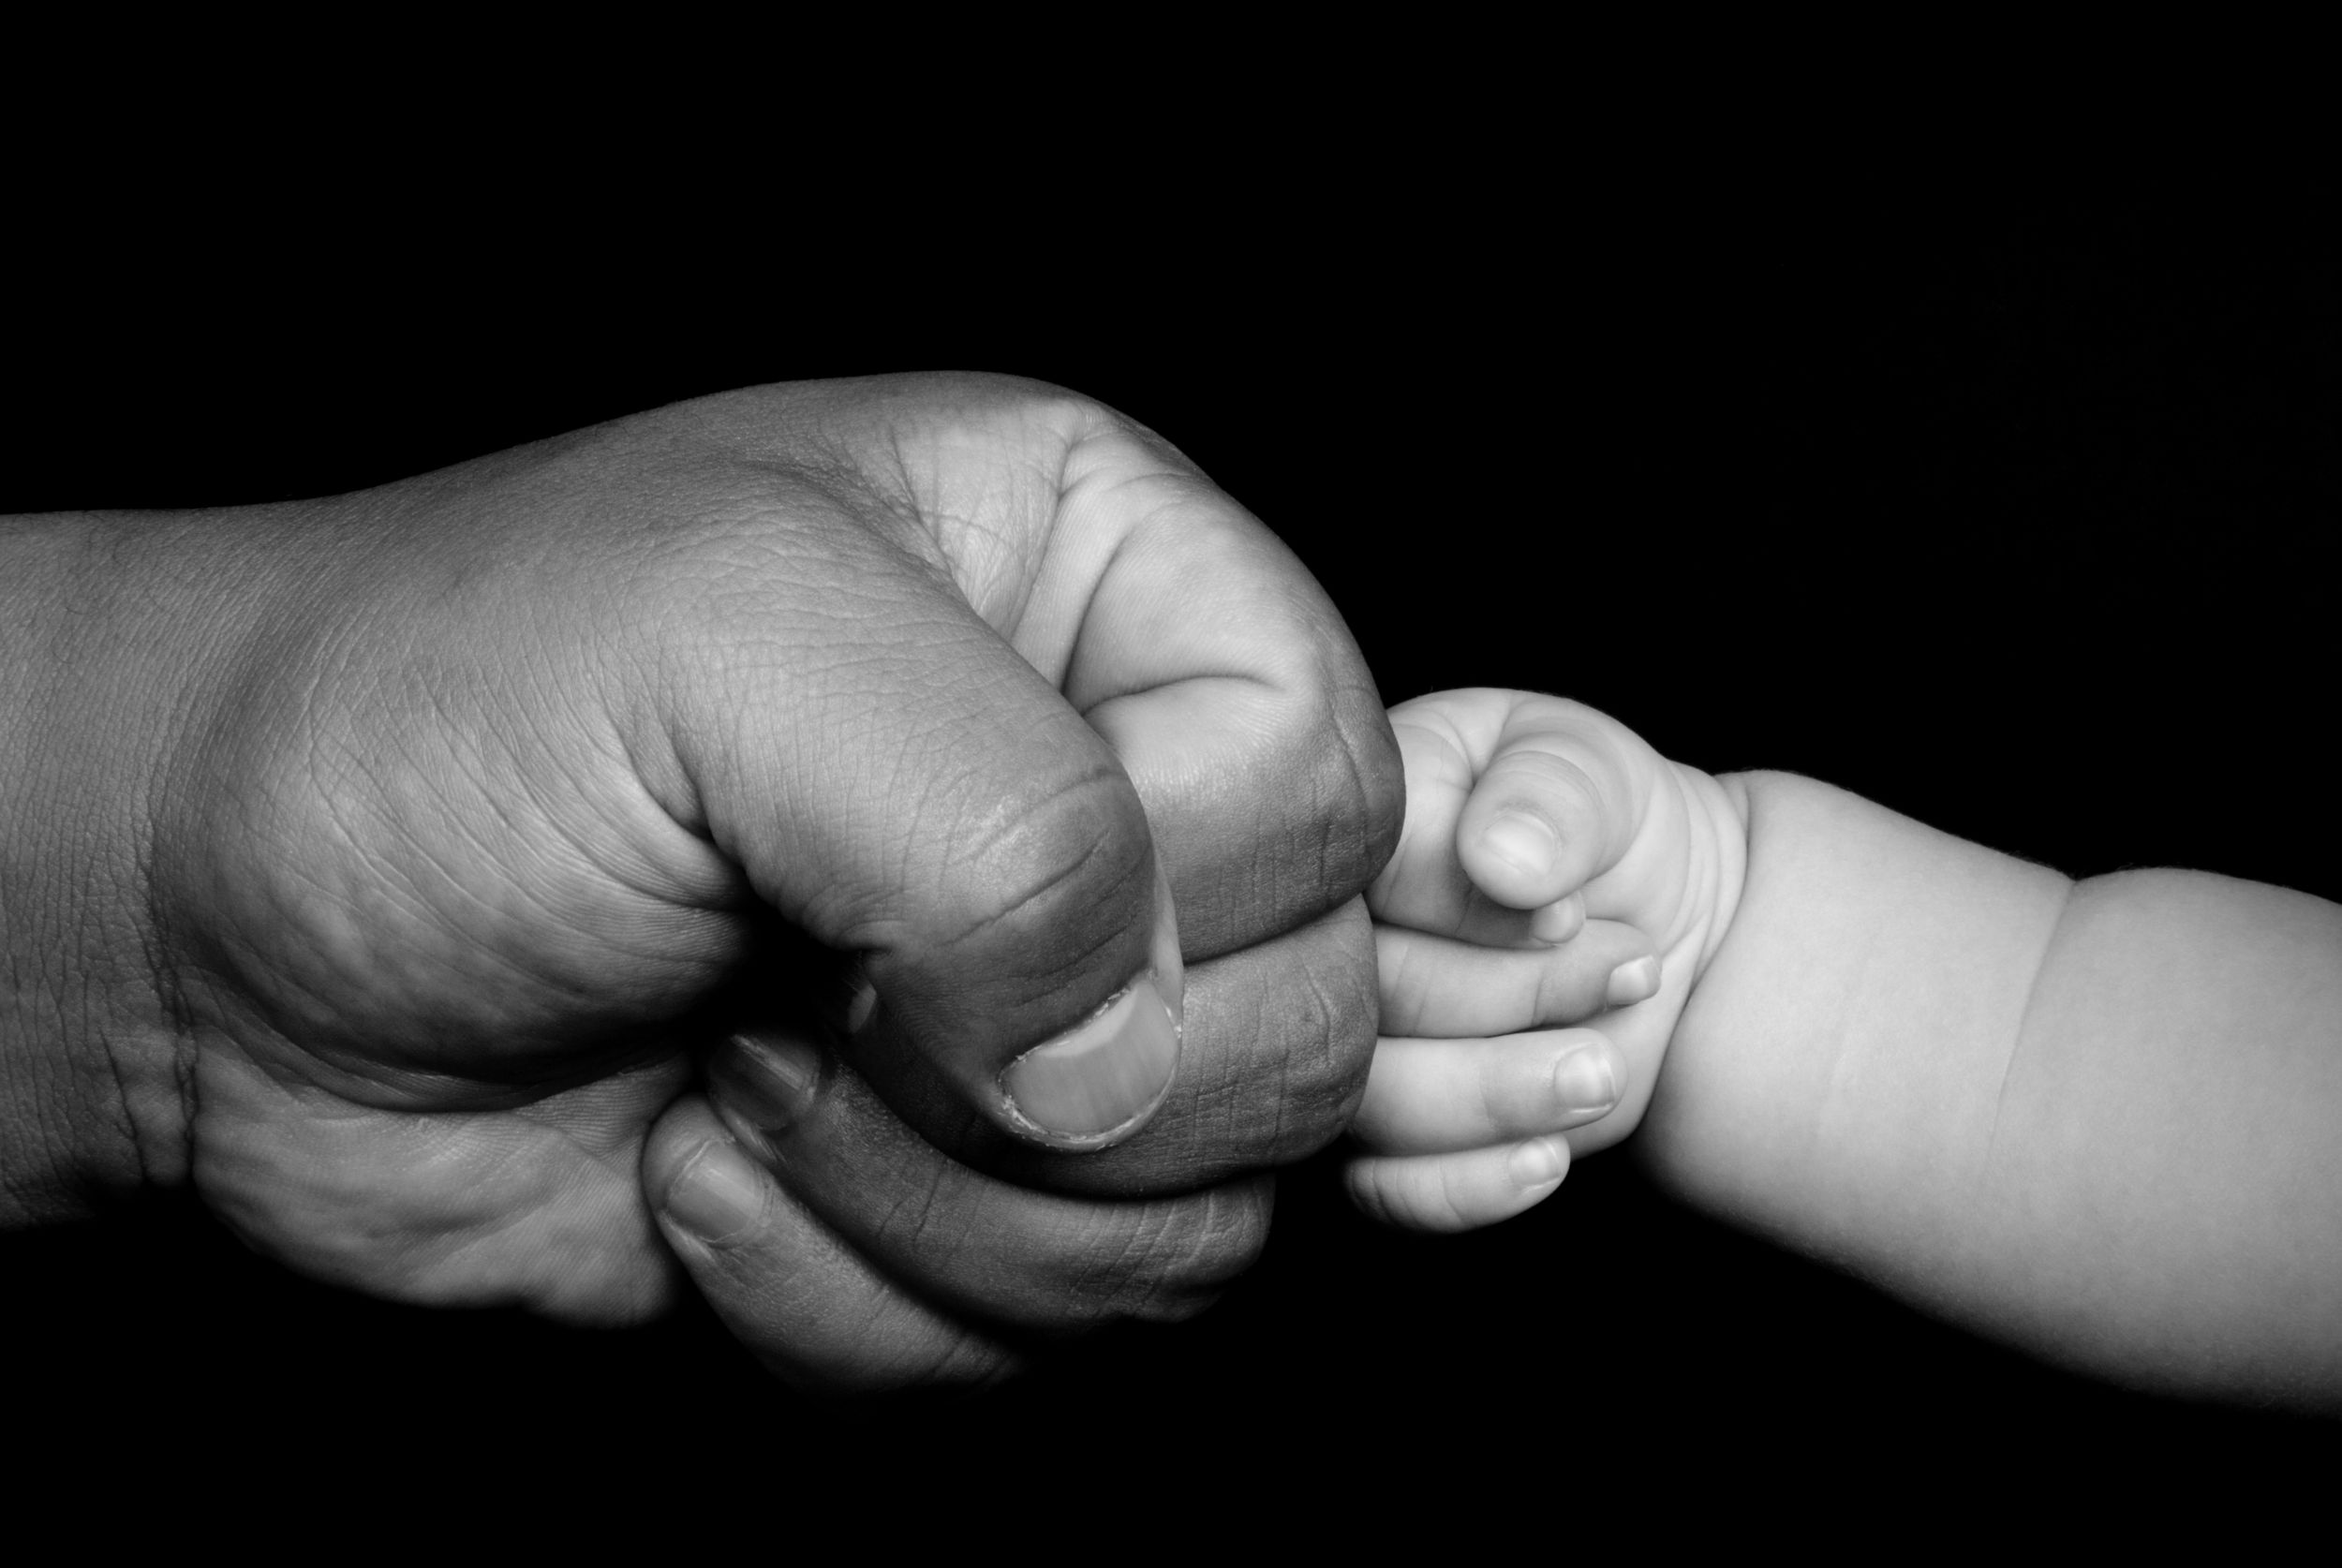 baby fist bumping his dad